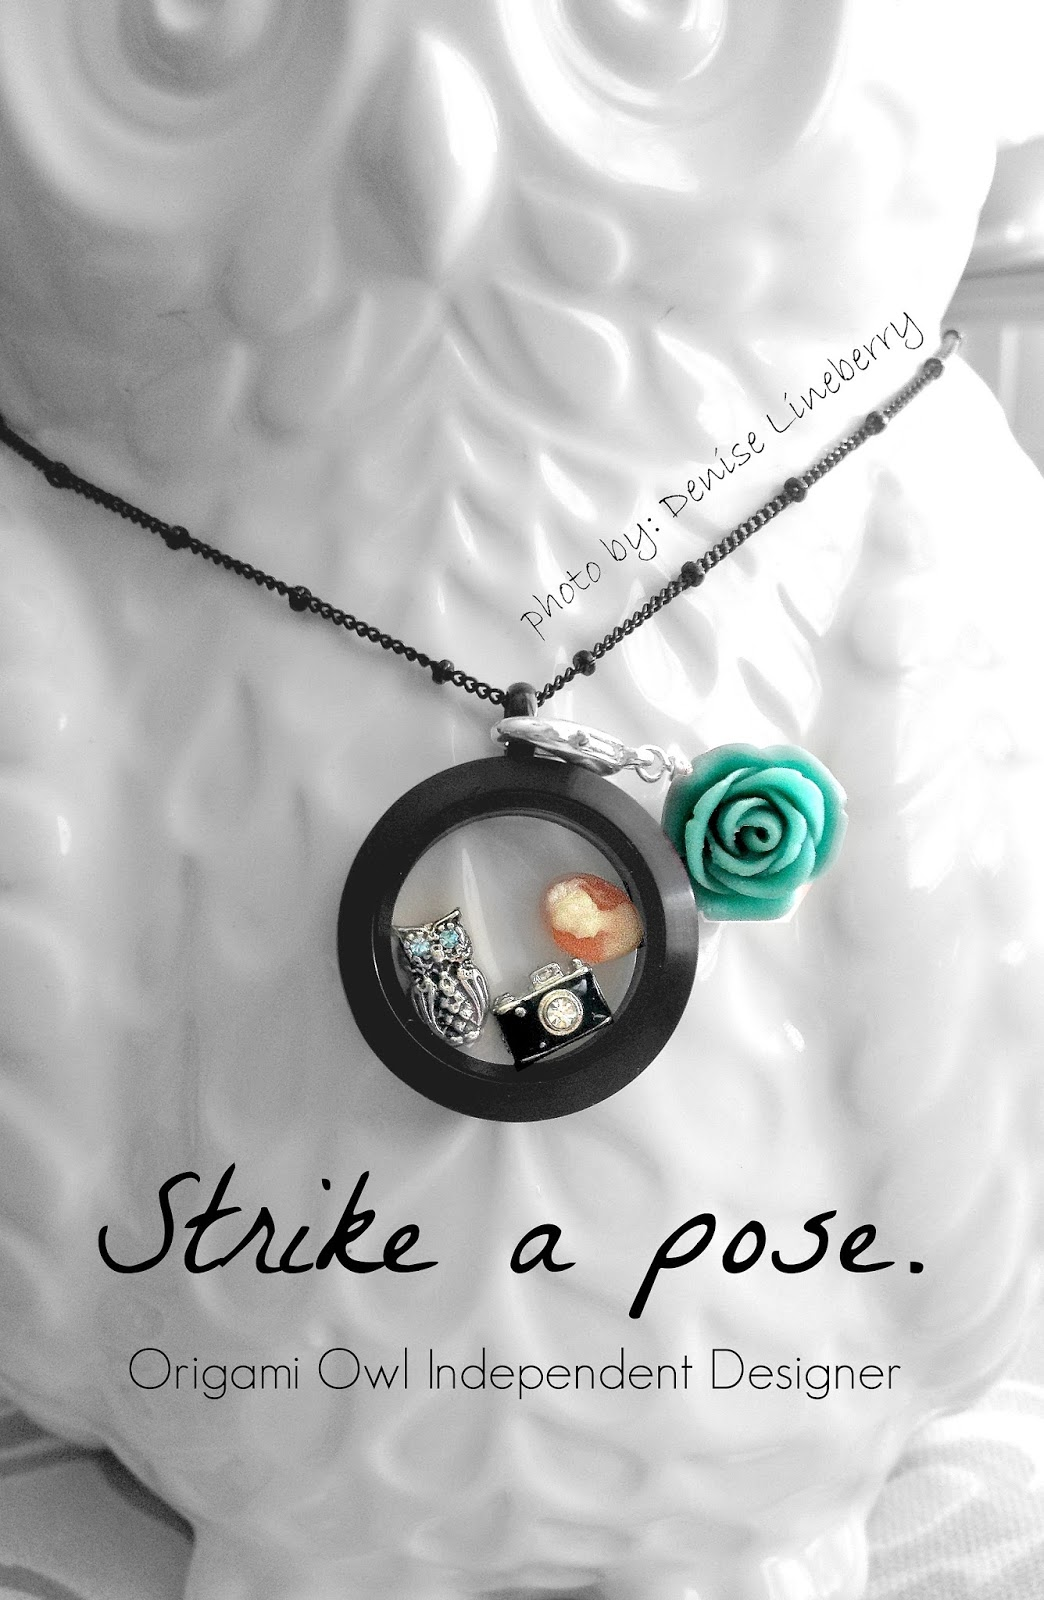 Origami Owl Teacher Gifts & Locket Ideas - Direct Sales, Party ... | 1600x1044